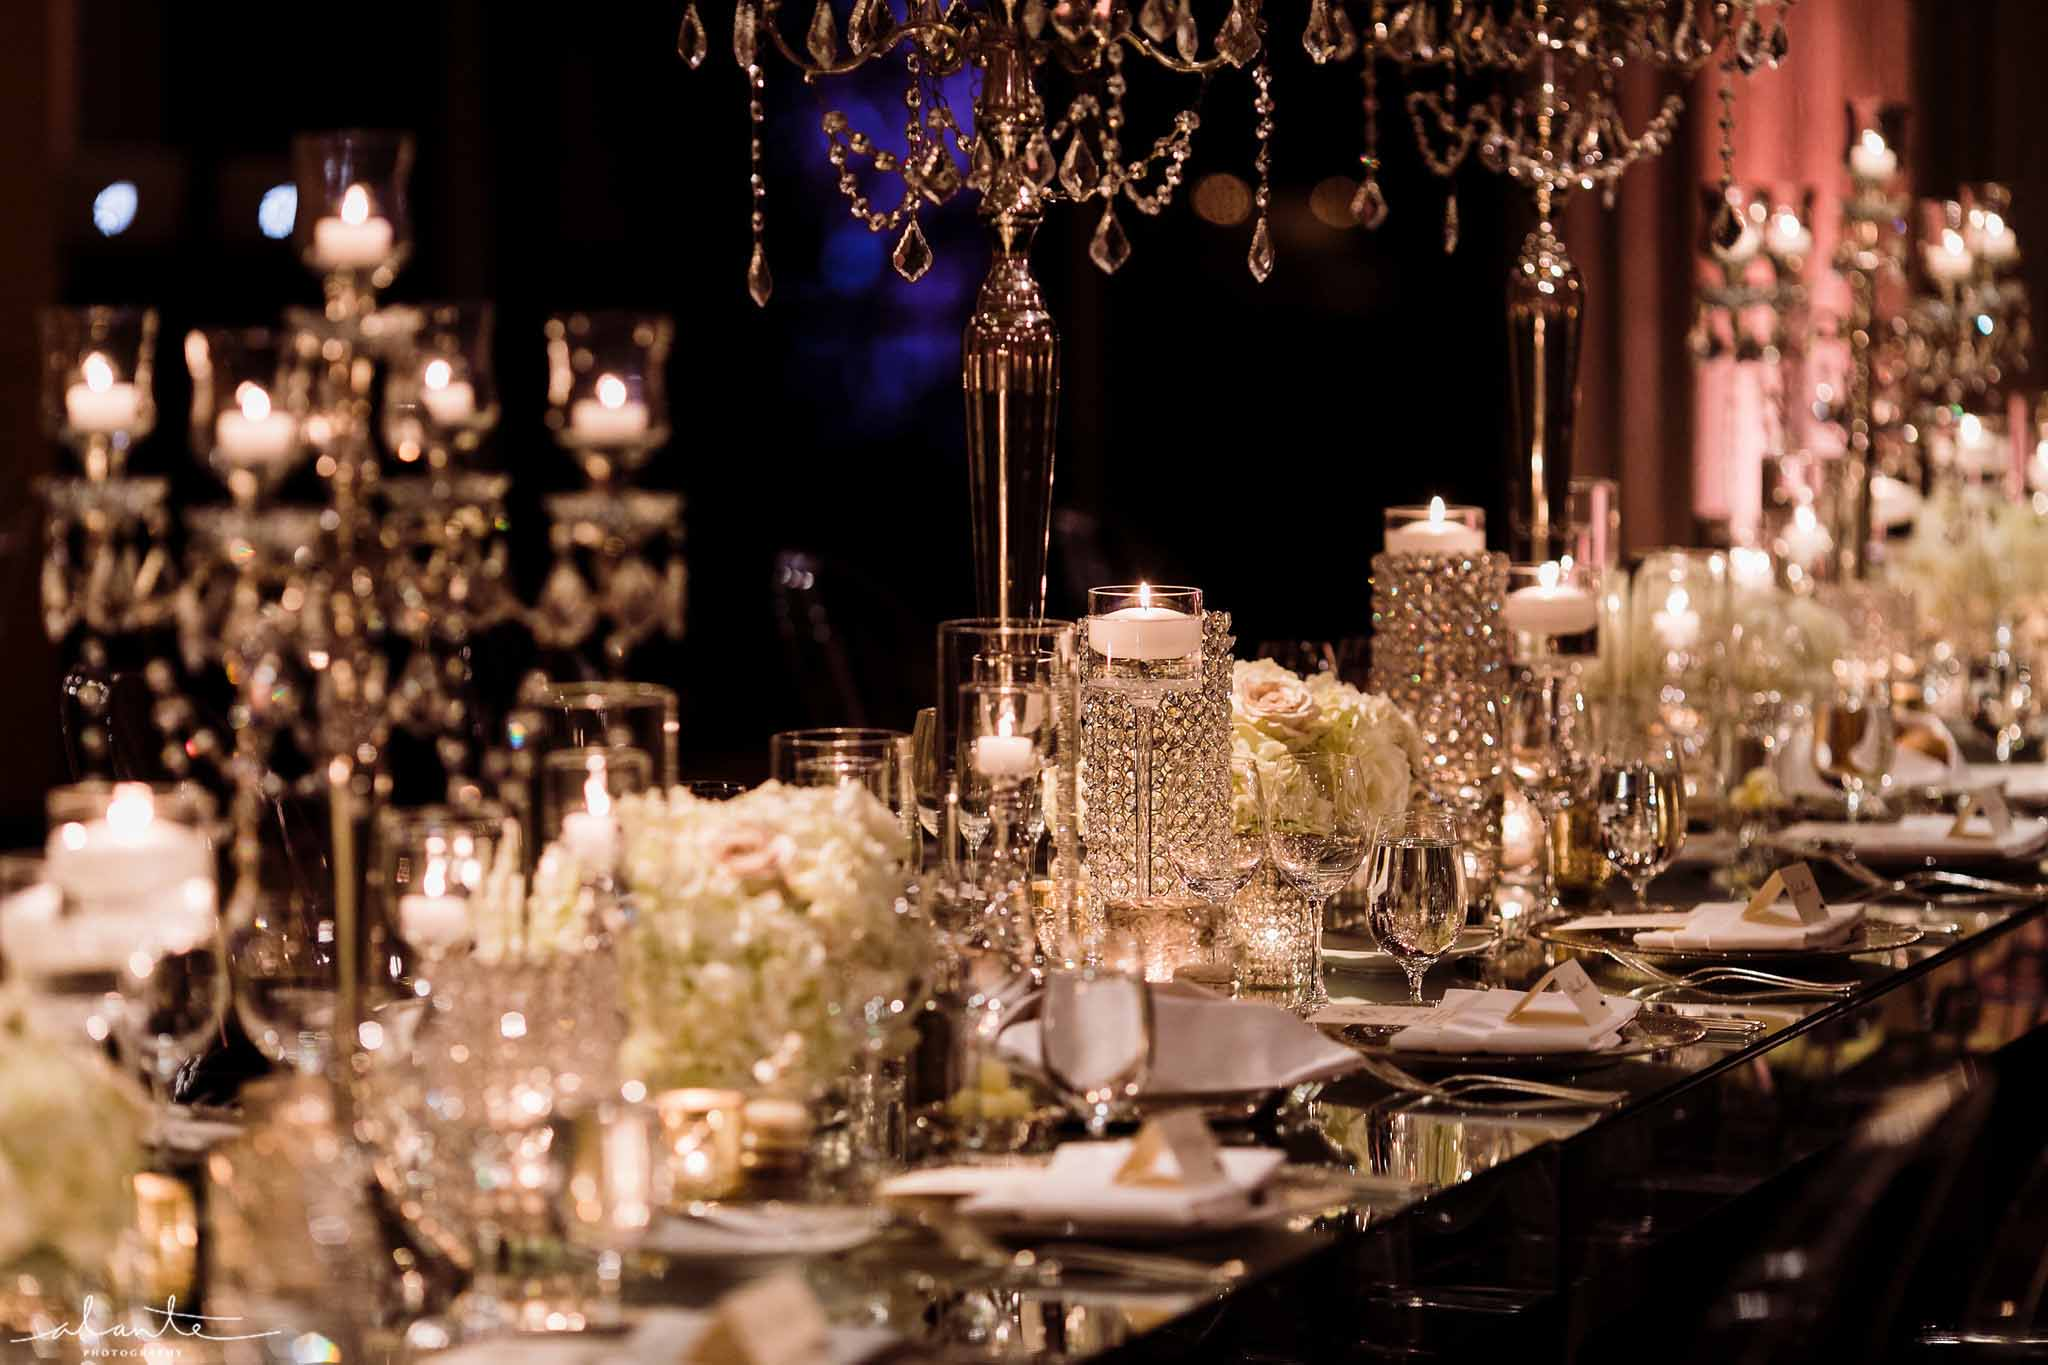 Elegant white wedding reception table with candles and white centerpieces and crystal candelabras - Luxury Winter Wedding at the Four Seasons by Flora Nova Design Seattle